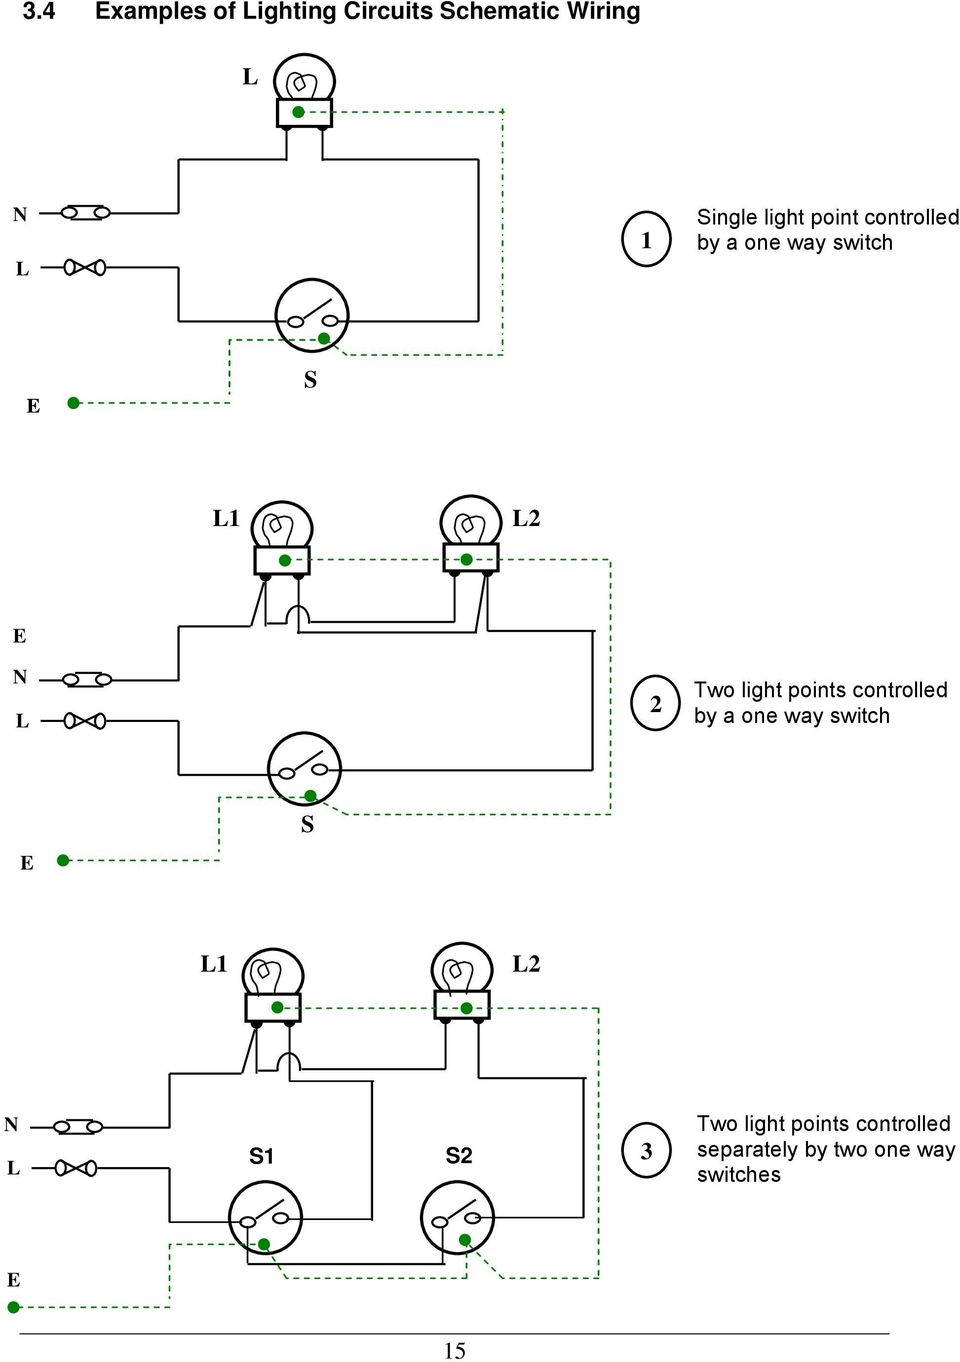 Guidelines For Electrical Wiring In Residential Buildings Pdf Light Switch L1 L2 L3 Points Controlled By A One Way E S N L S1 S2 3